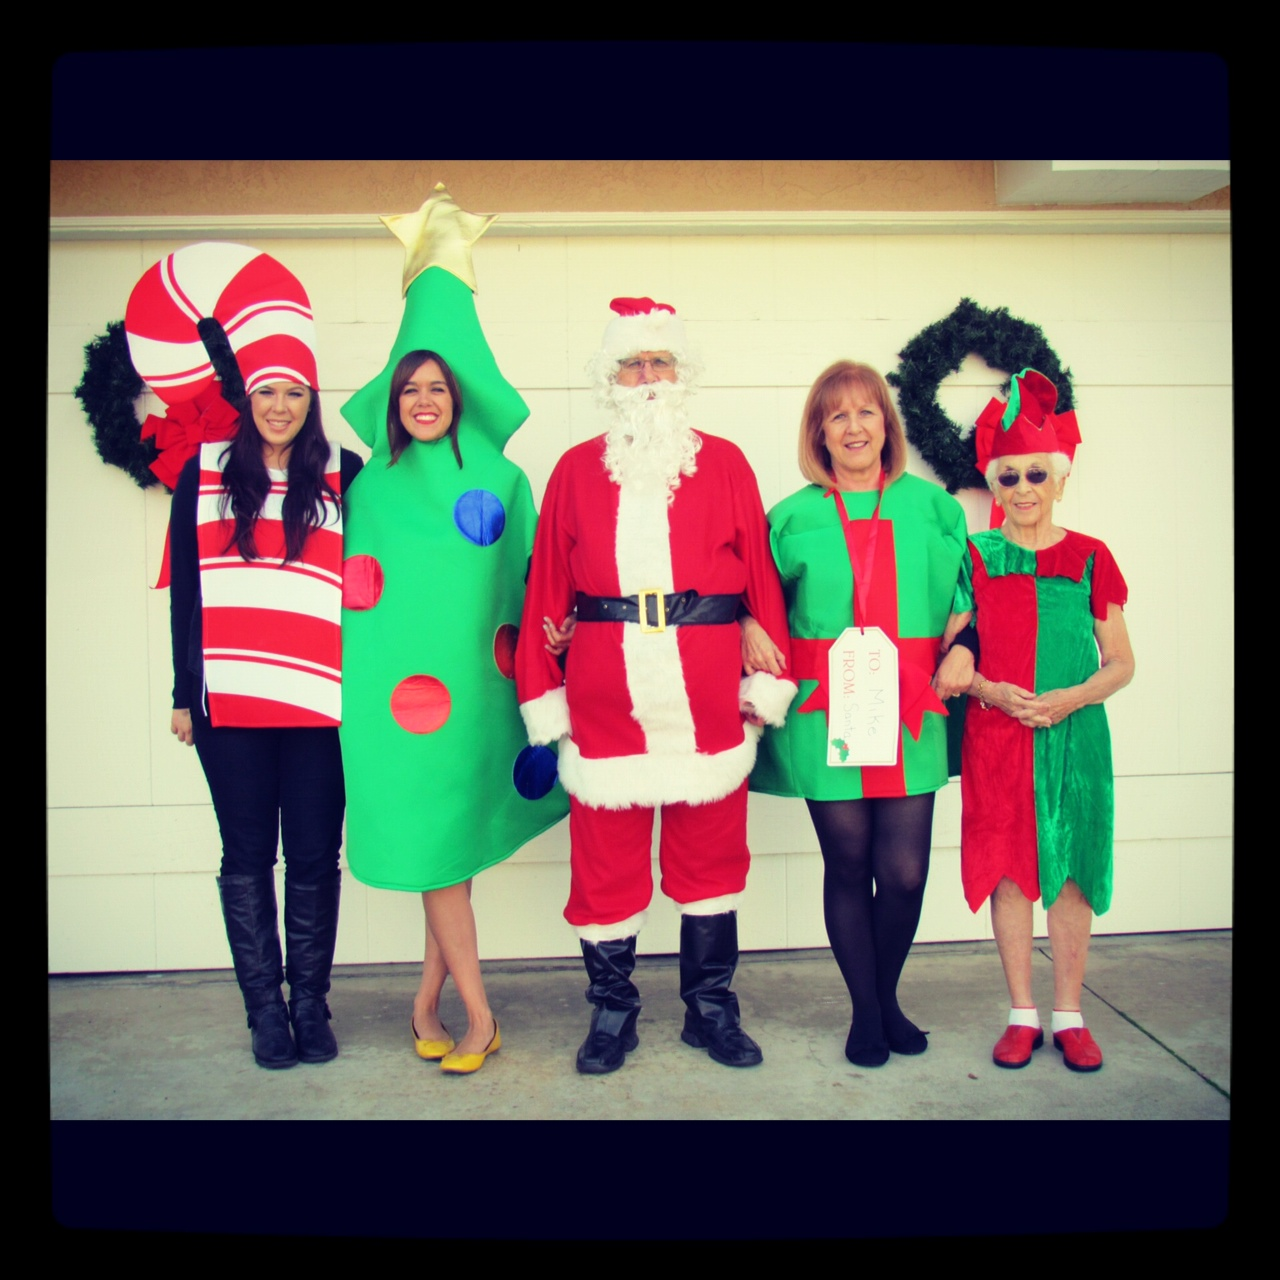 A Family Christmas Card Photo! - Apples and ABC\'s